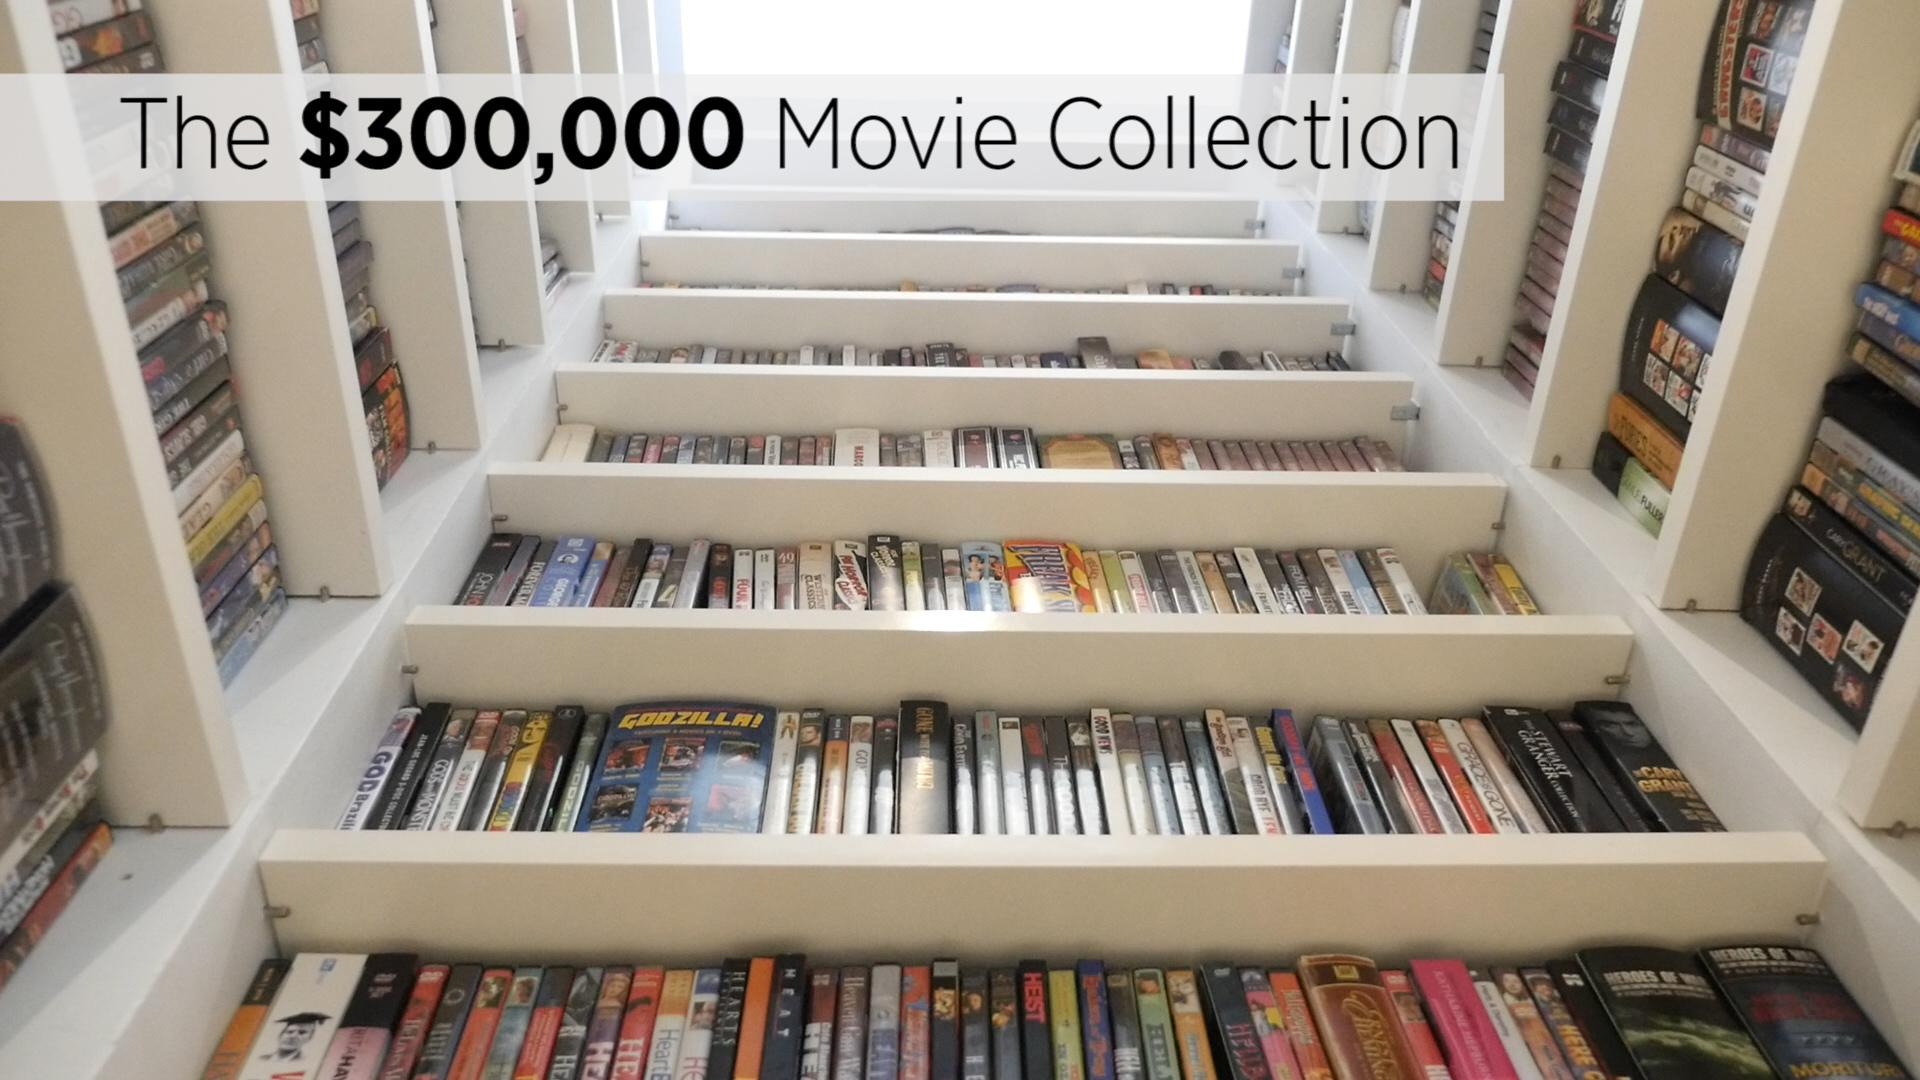 The $300,000 Movie Collection